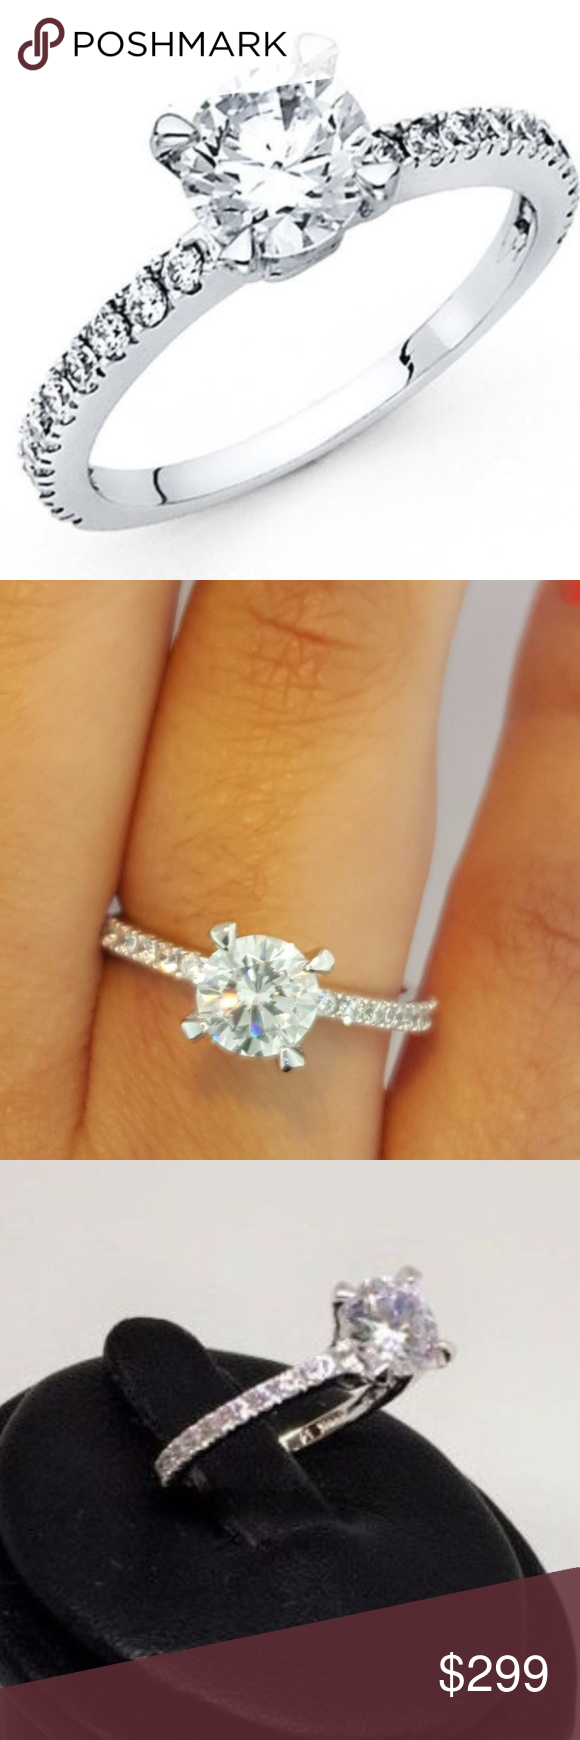 14k Solid Yellow Gold 1.50 Ct Diamond Engagement Wedding Ring Round Cut with Baguette side stones Cubic Zirconia